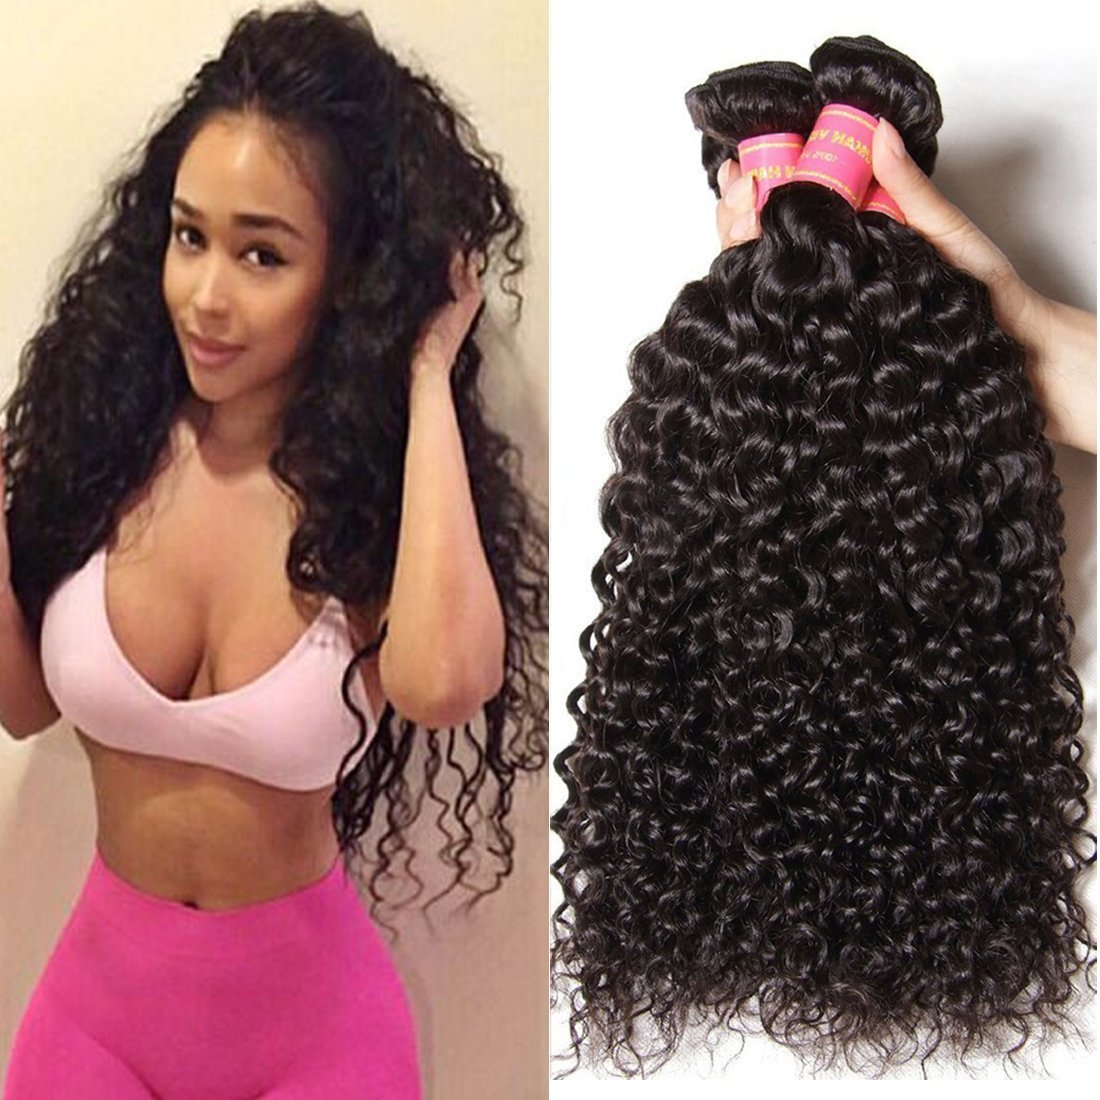 Beauty Forever Hair Brazilian Curly Virgin Hair Weave Pack of 3 Bundles 100% Unprocessed Human Hair Extensions Nature Color (100+/-5g)/pc (18 20 22)